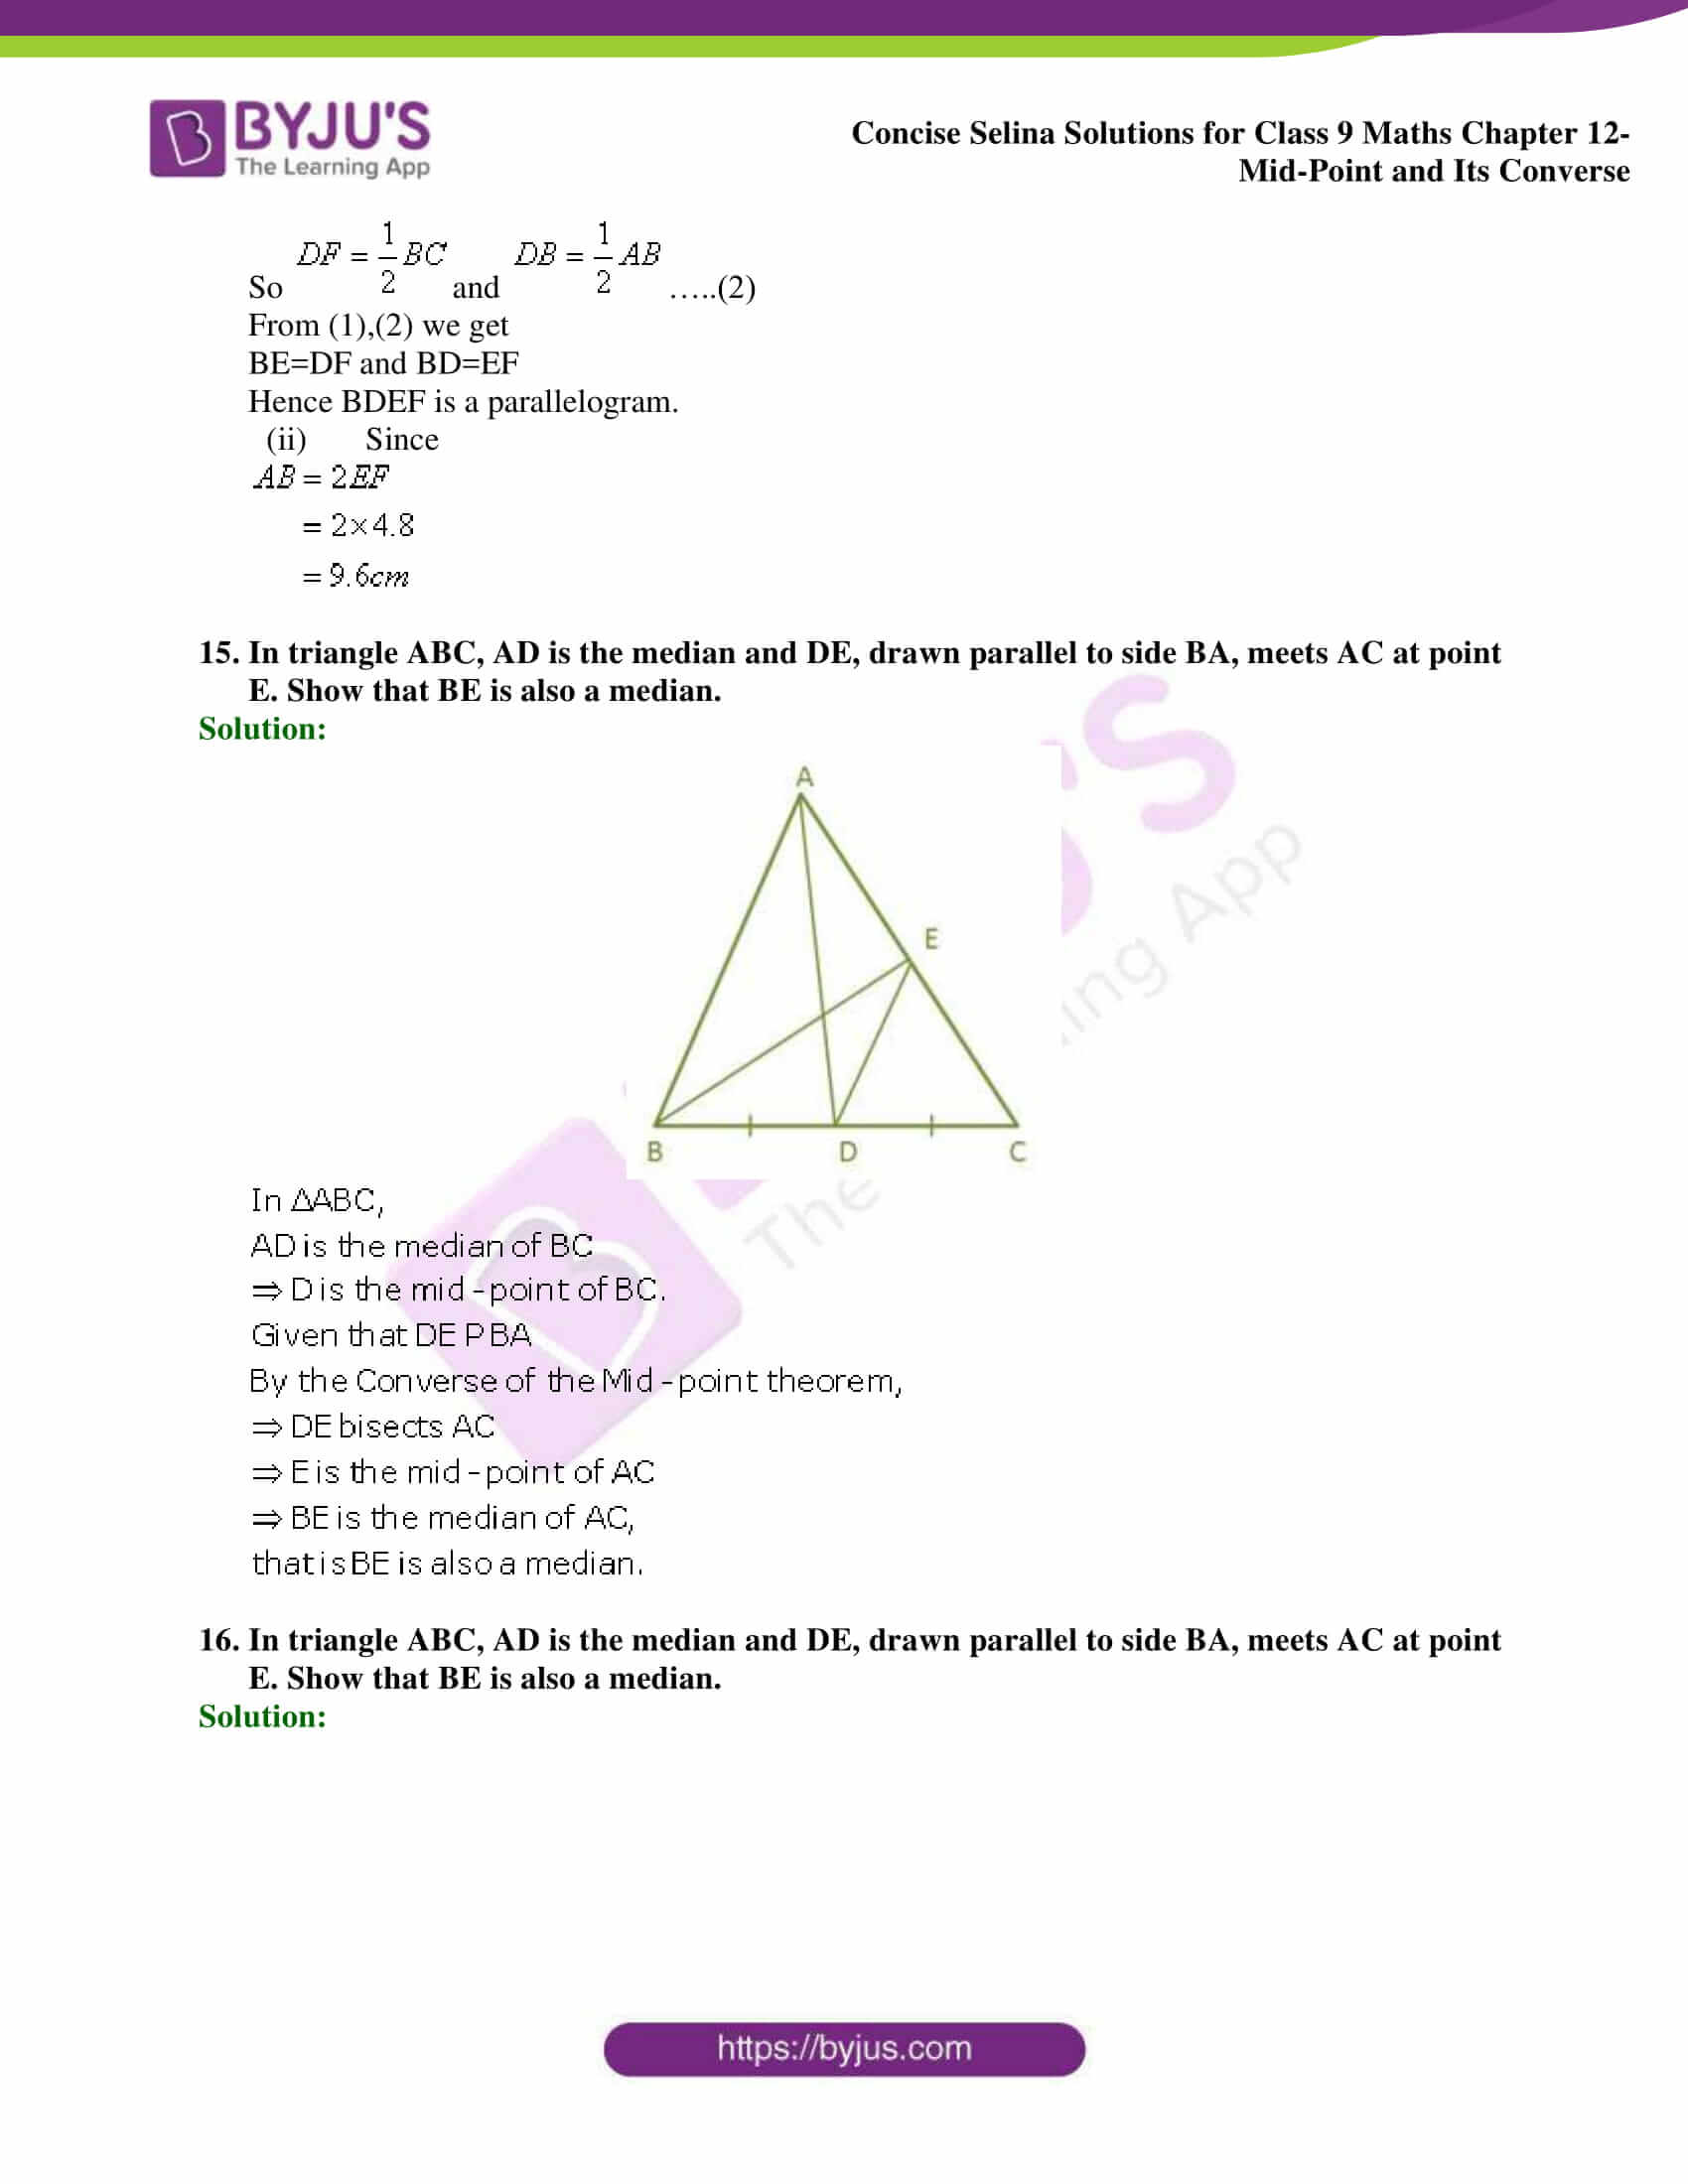 selina Solutions for Class 9 Maths Chapter 12 part 10